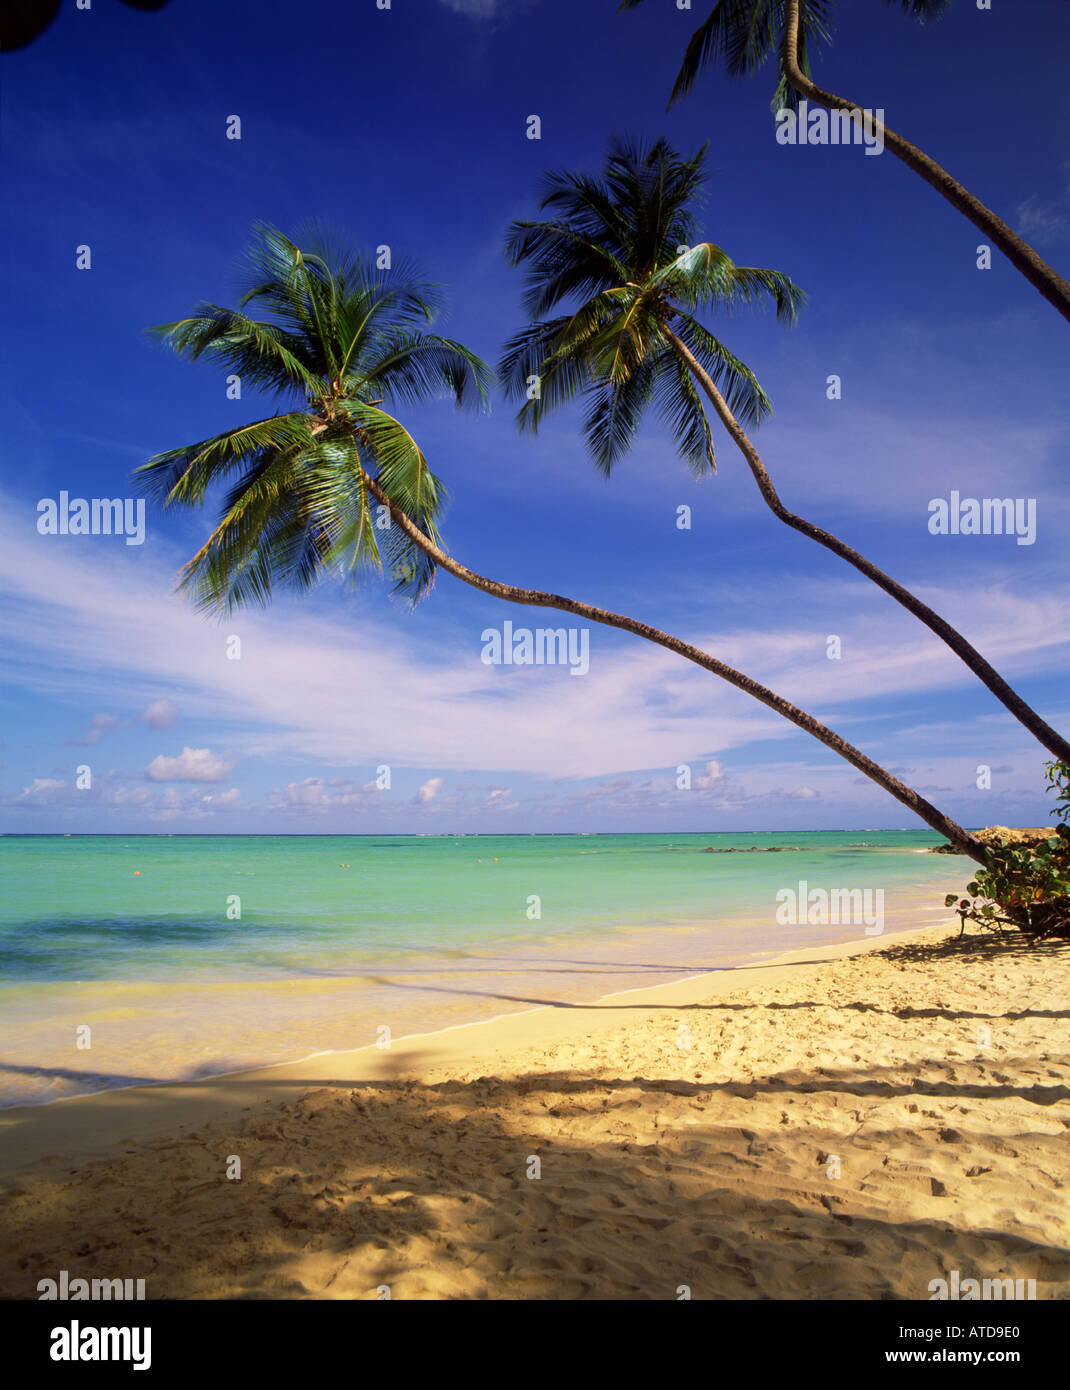 Palm trees lean over the white sand beach of Pigeon Point on the Caribbean island of Tobago - Stock Image